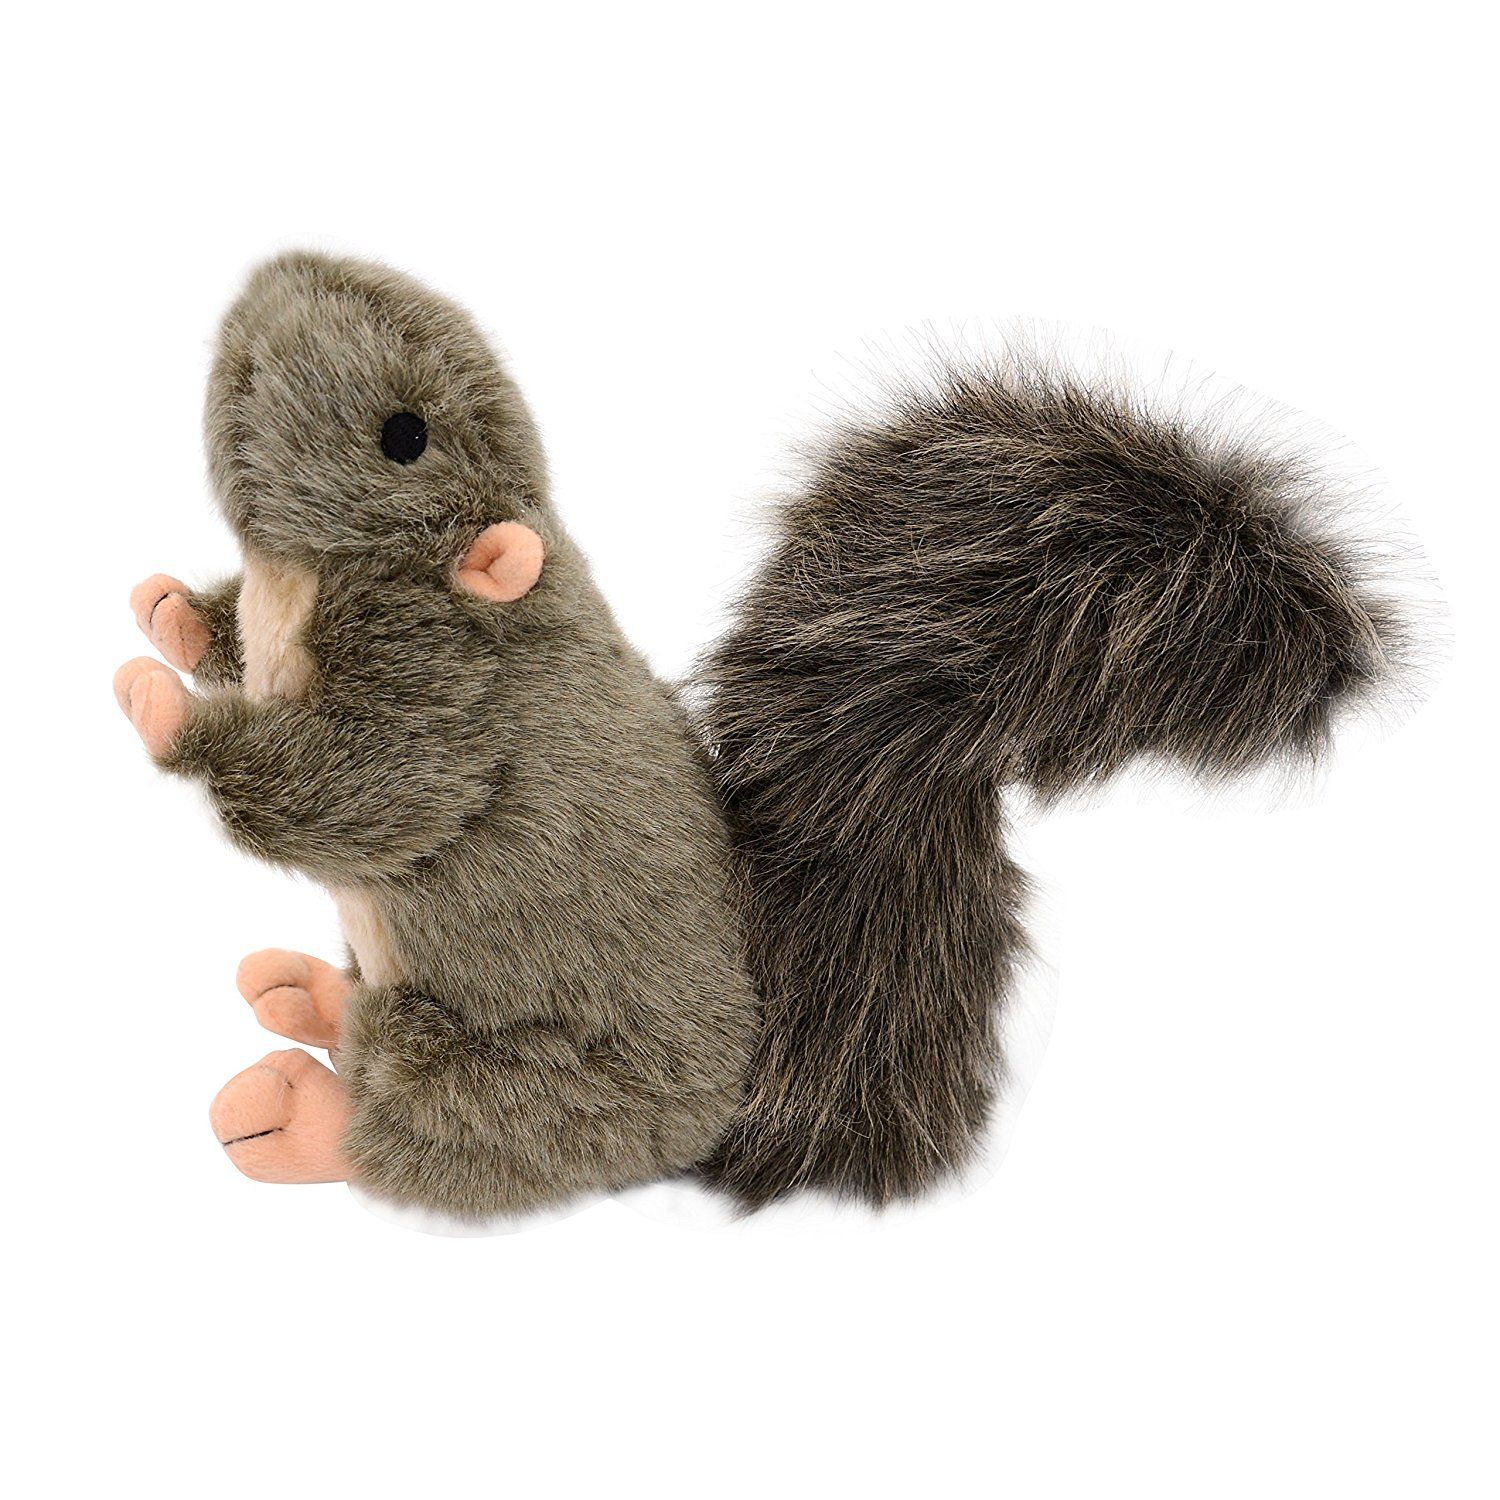 Squeaky Dog Toy Squirrel Puppy Plush Toys By Kooltail Check